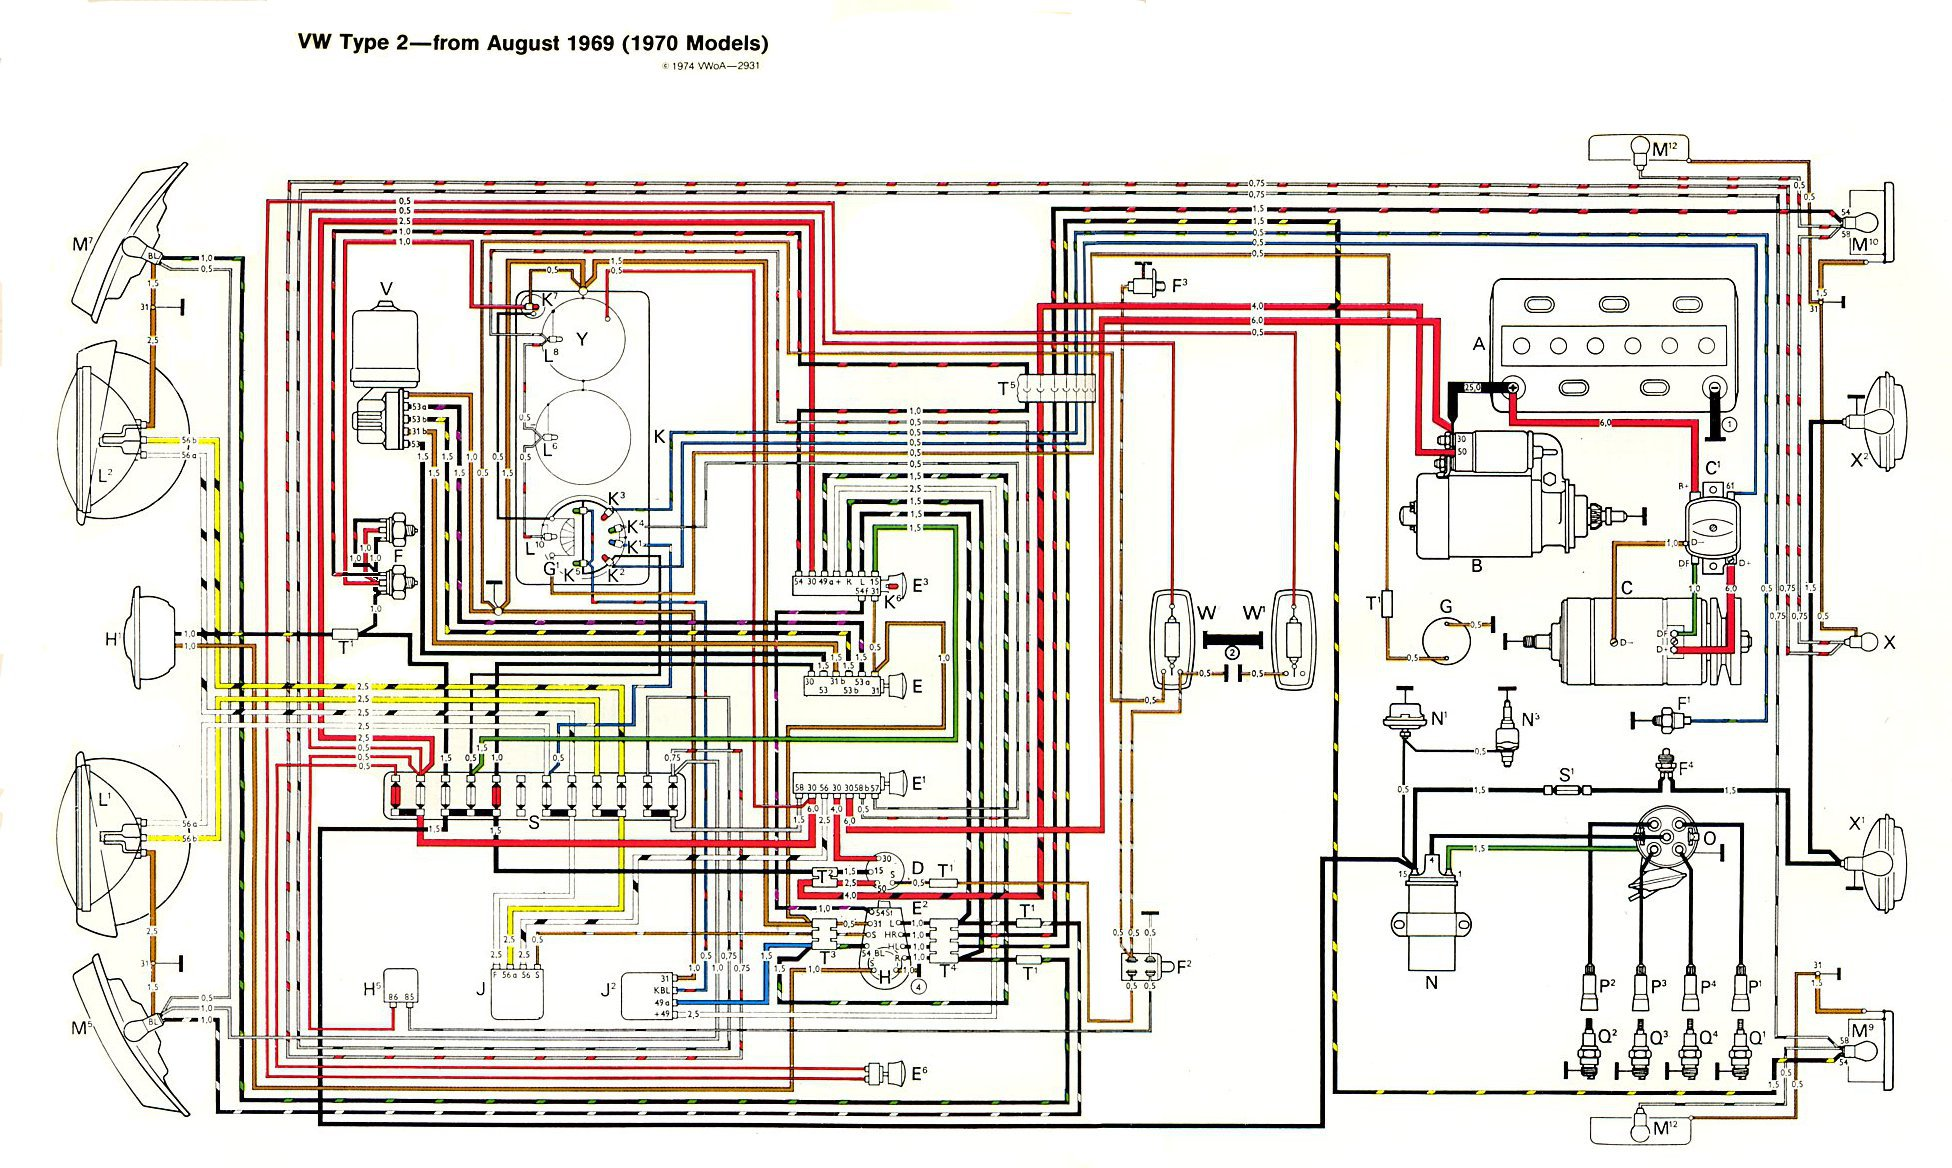 1973 Vw Bus Wiring Diagram The Portal And Forum Of 69 Volkswagen Bug Voltage Regulator Thesamba Com Type 2 Diagrams Rh 1970 1974 Beetle